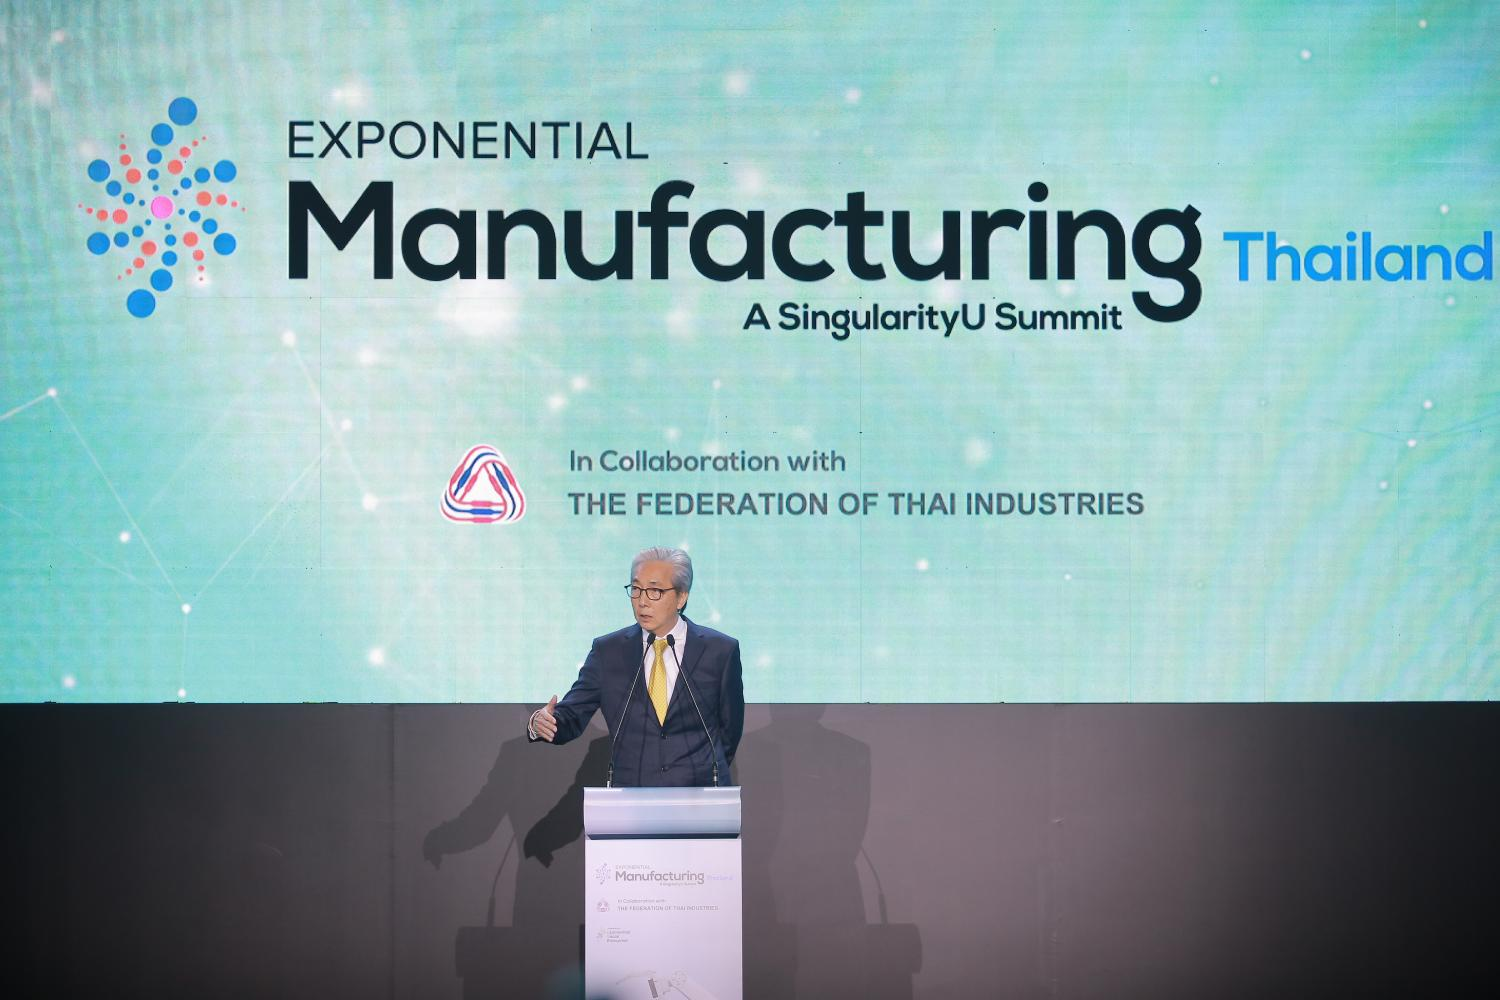 Deputy Prime Minister Somkid Jatusripitak delivers his speech at the Exponential Manufacturing Thailand summit.